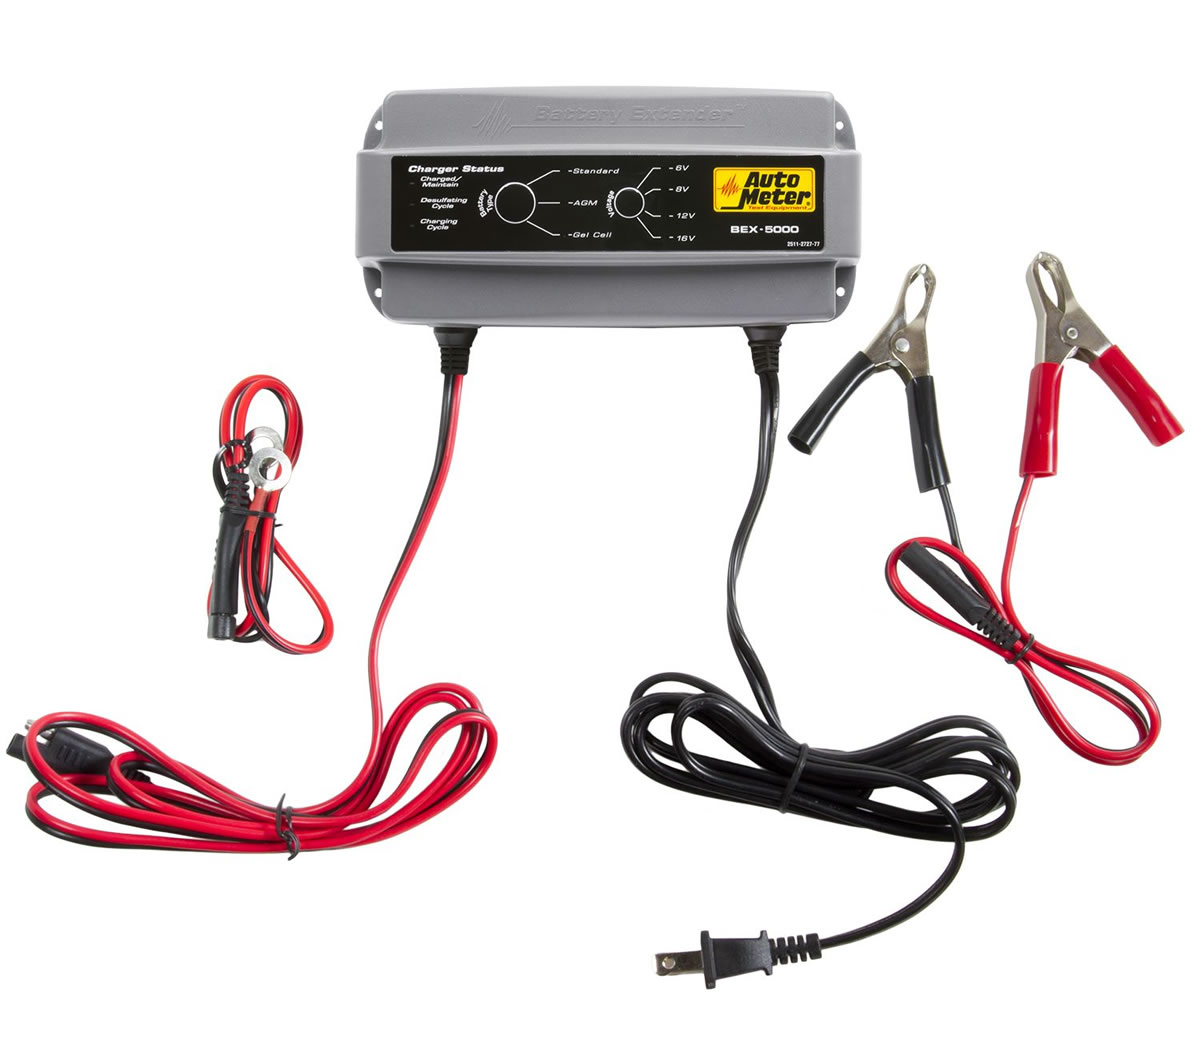 Battery Extender BEX-3000 and BEX-5000